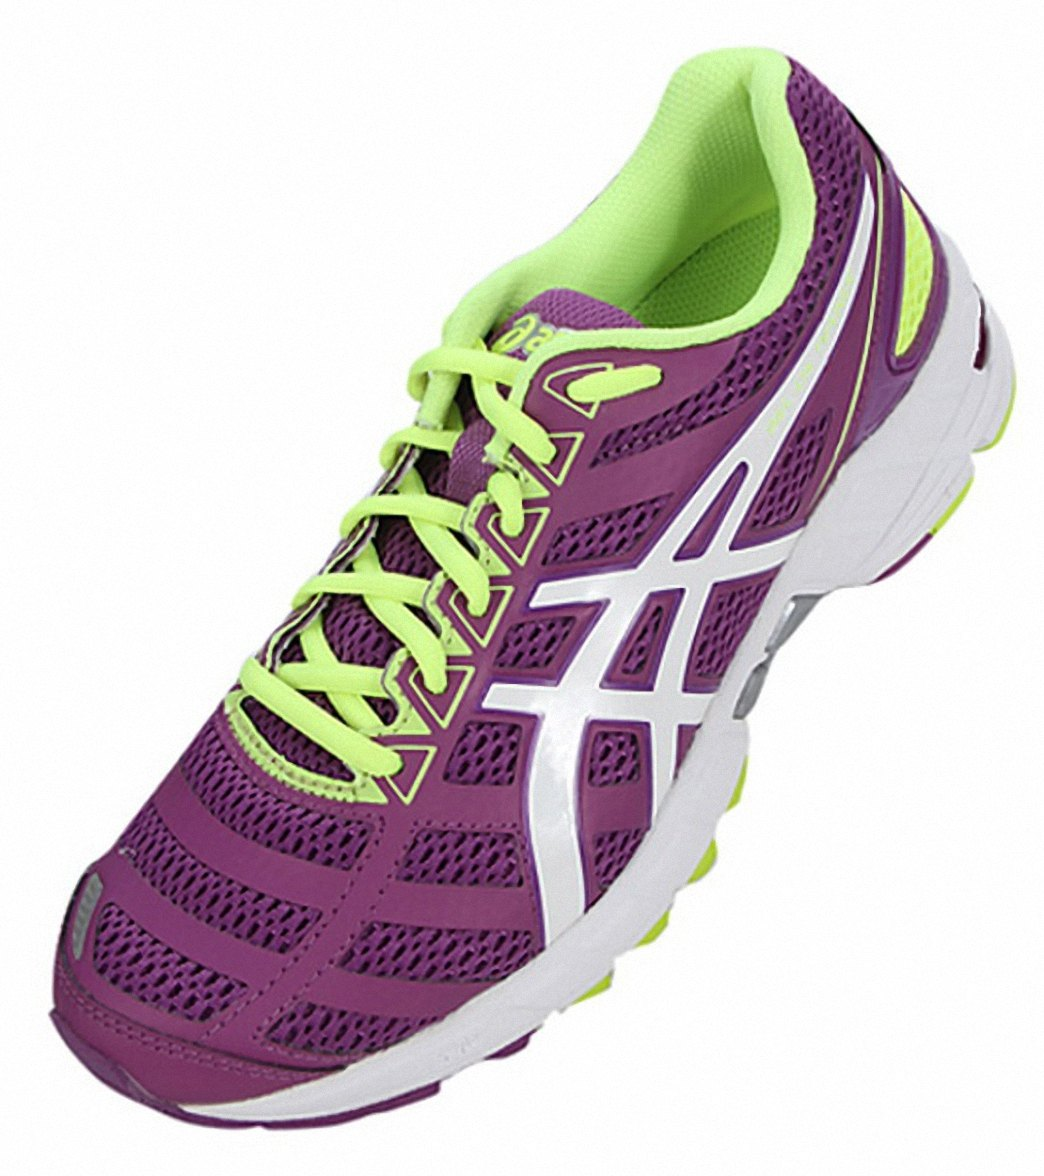 low priced 4e9f1 f63f4 Asics Women's Gel-DS Trainer 18 Running Shoes